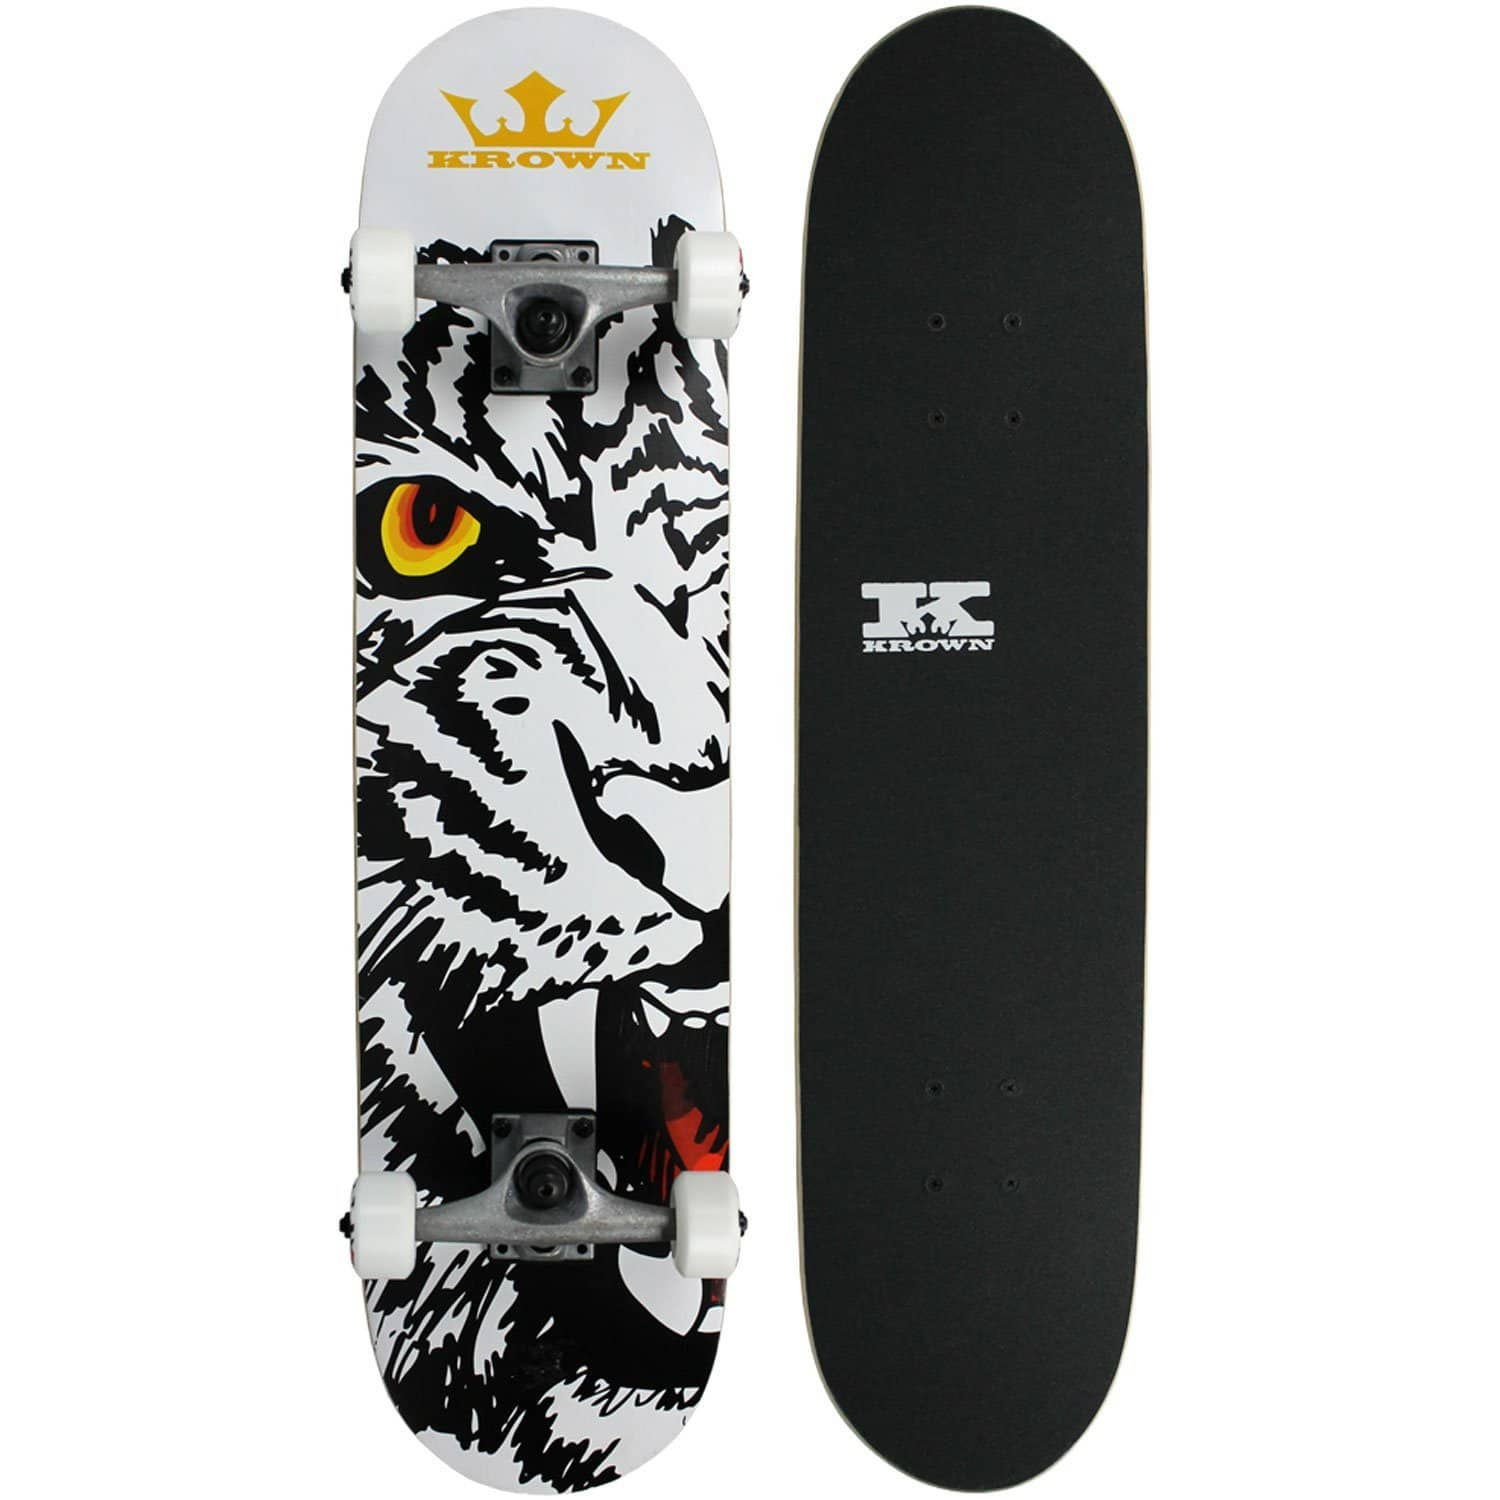 Best Entry Level Skateboards